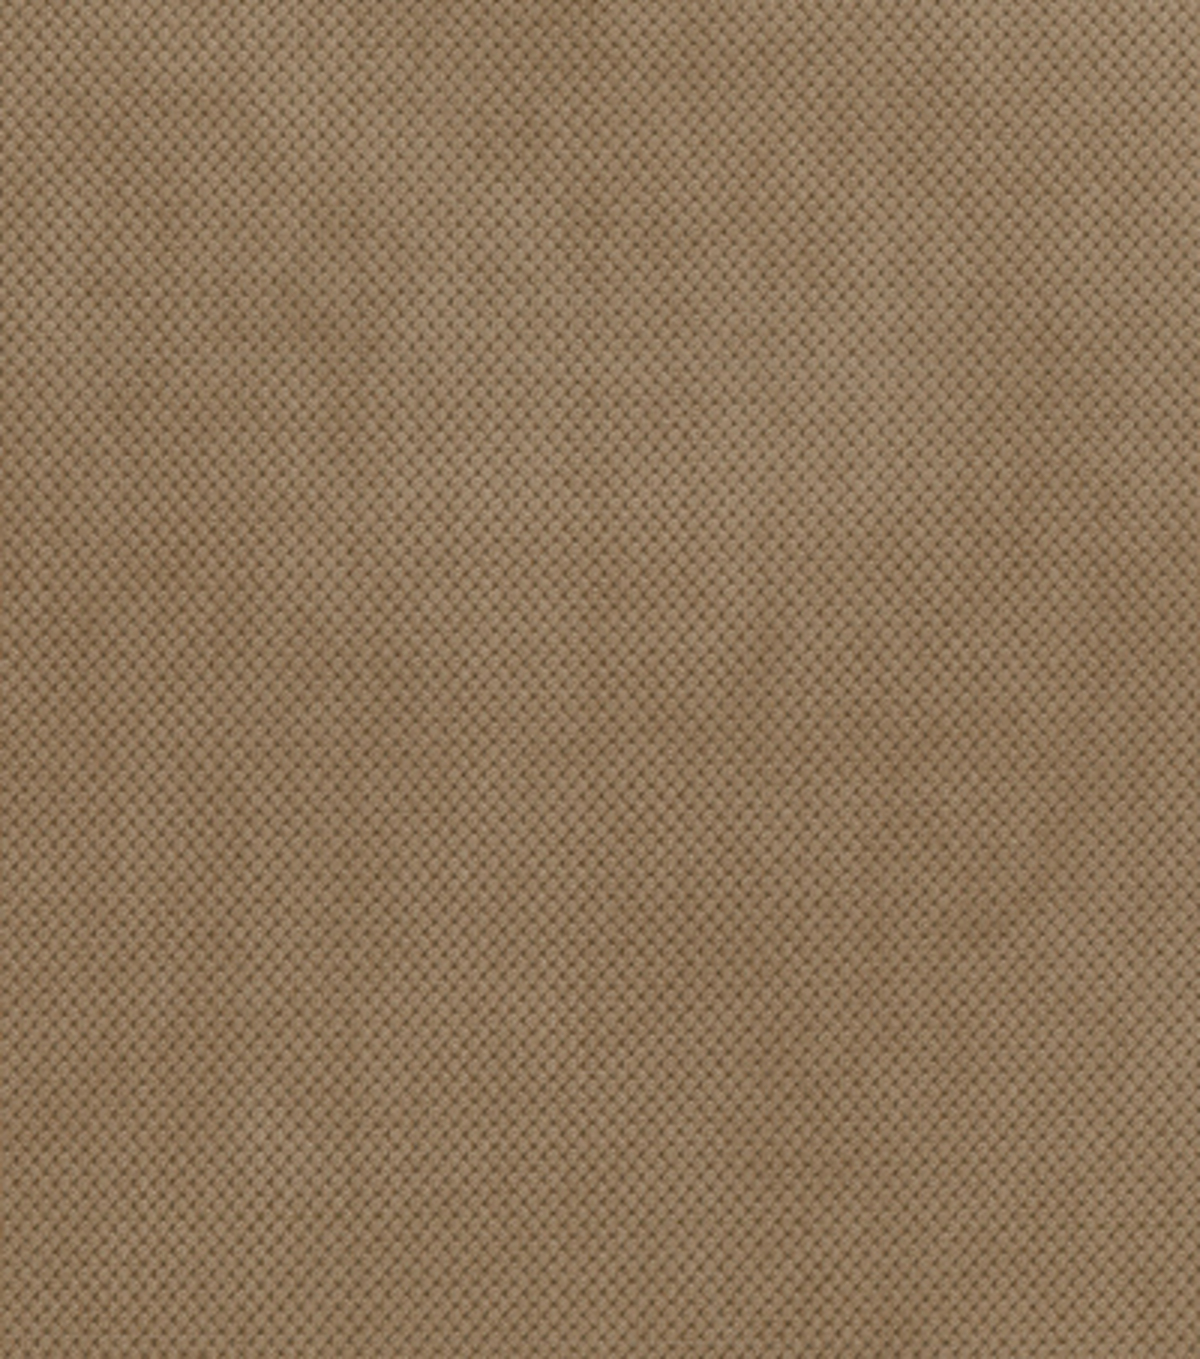 Home Decor Solid Fabric-Richloom Signature Series Bradford Brownstone